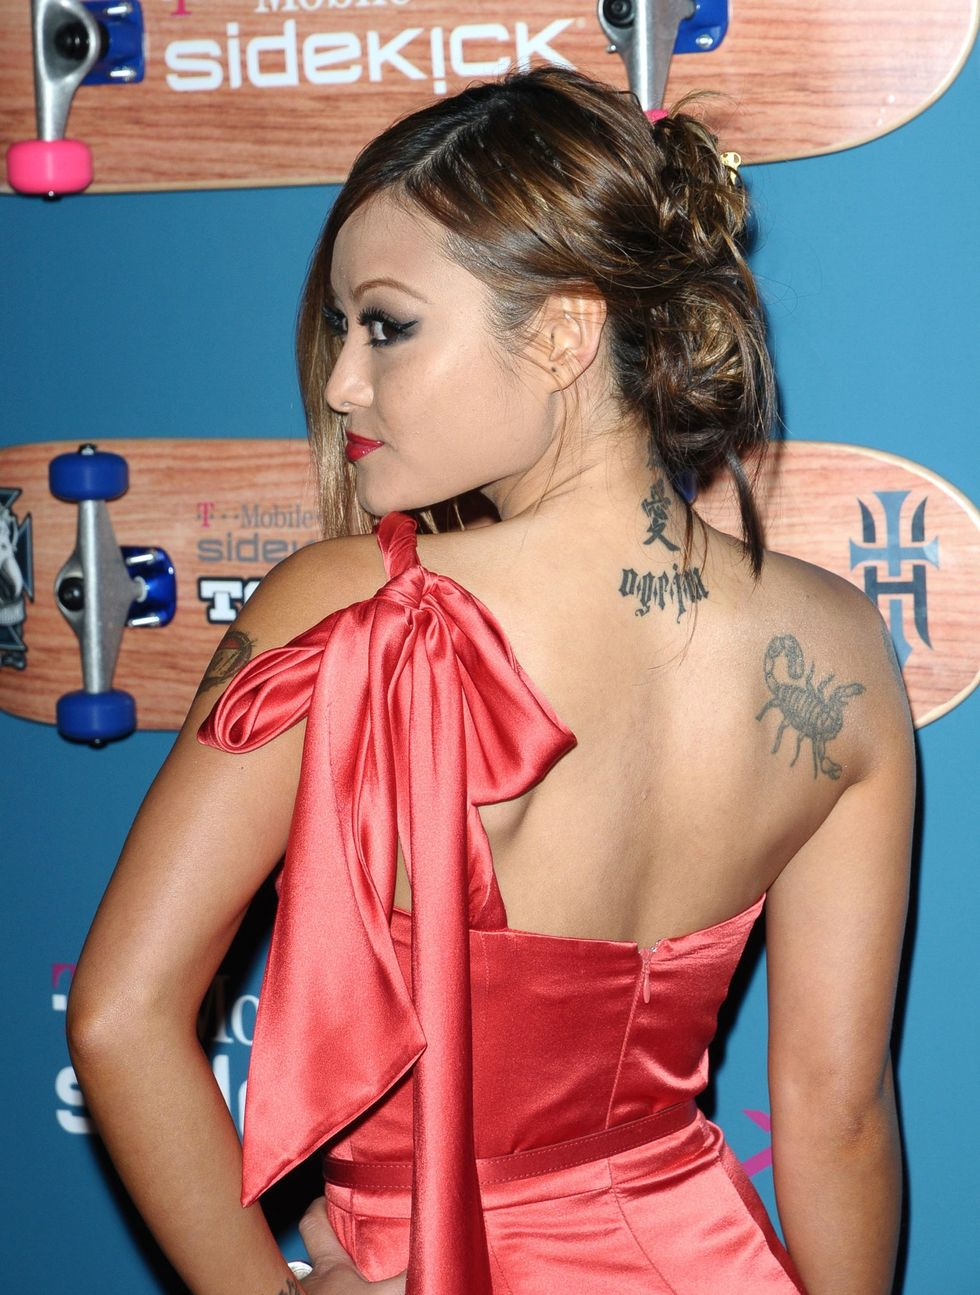 christina-milian-and-tila-tequila-t-mobile-sidekick-lx-tony-hawk-edition-party-in-los-angeles-01